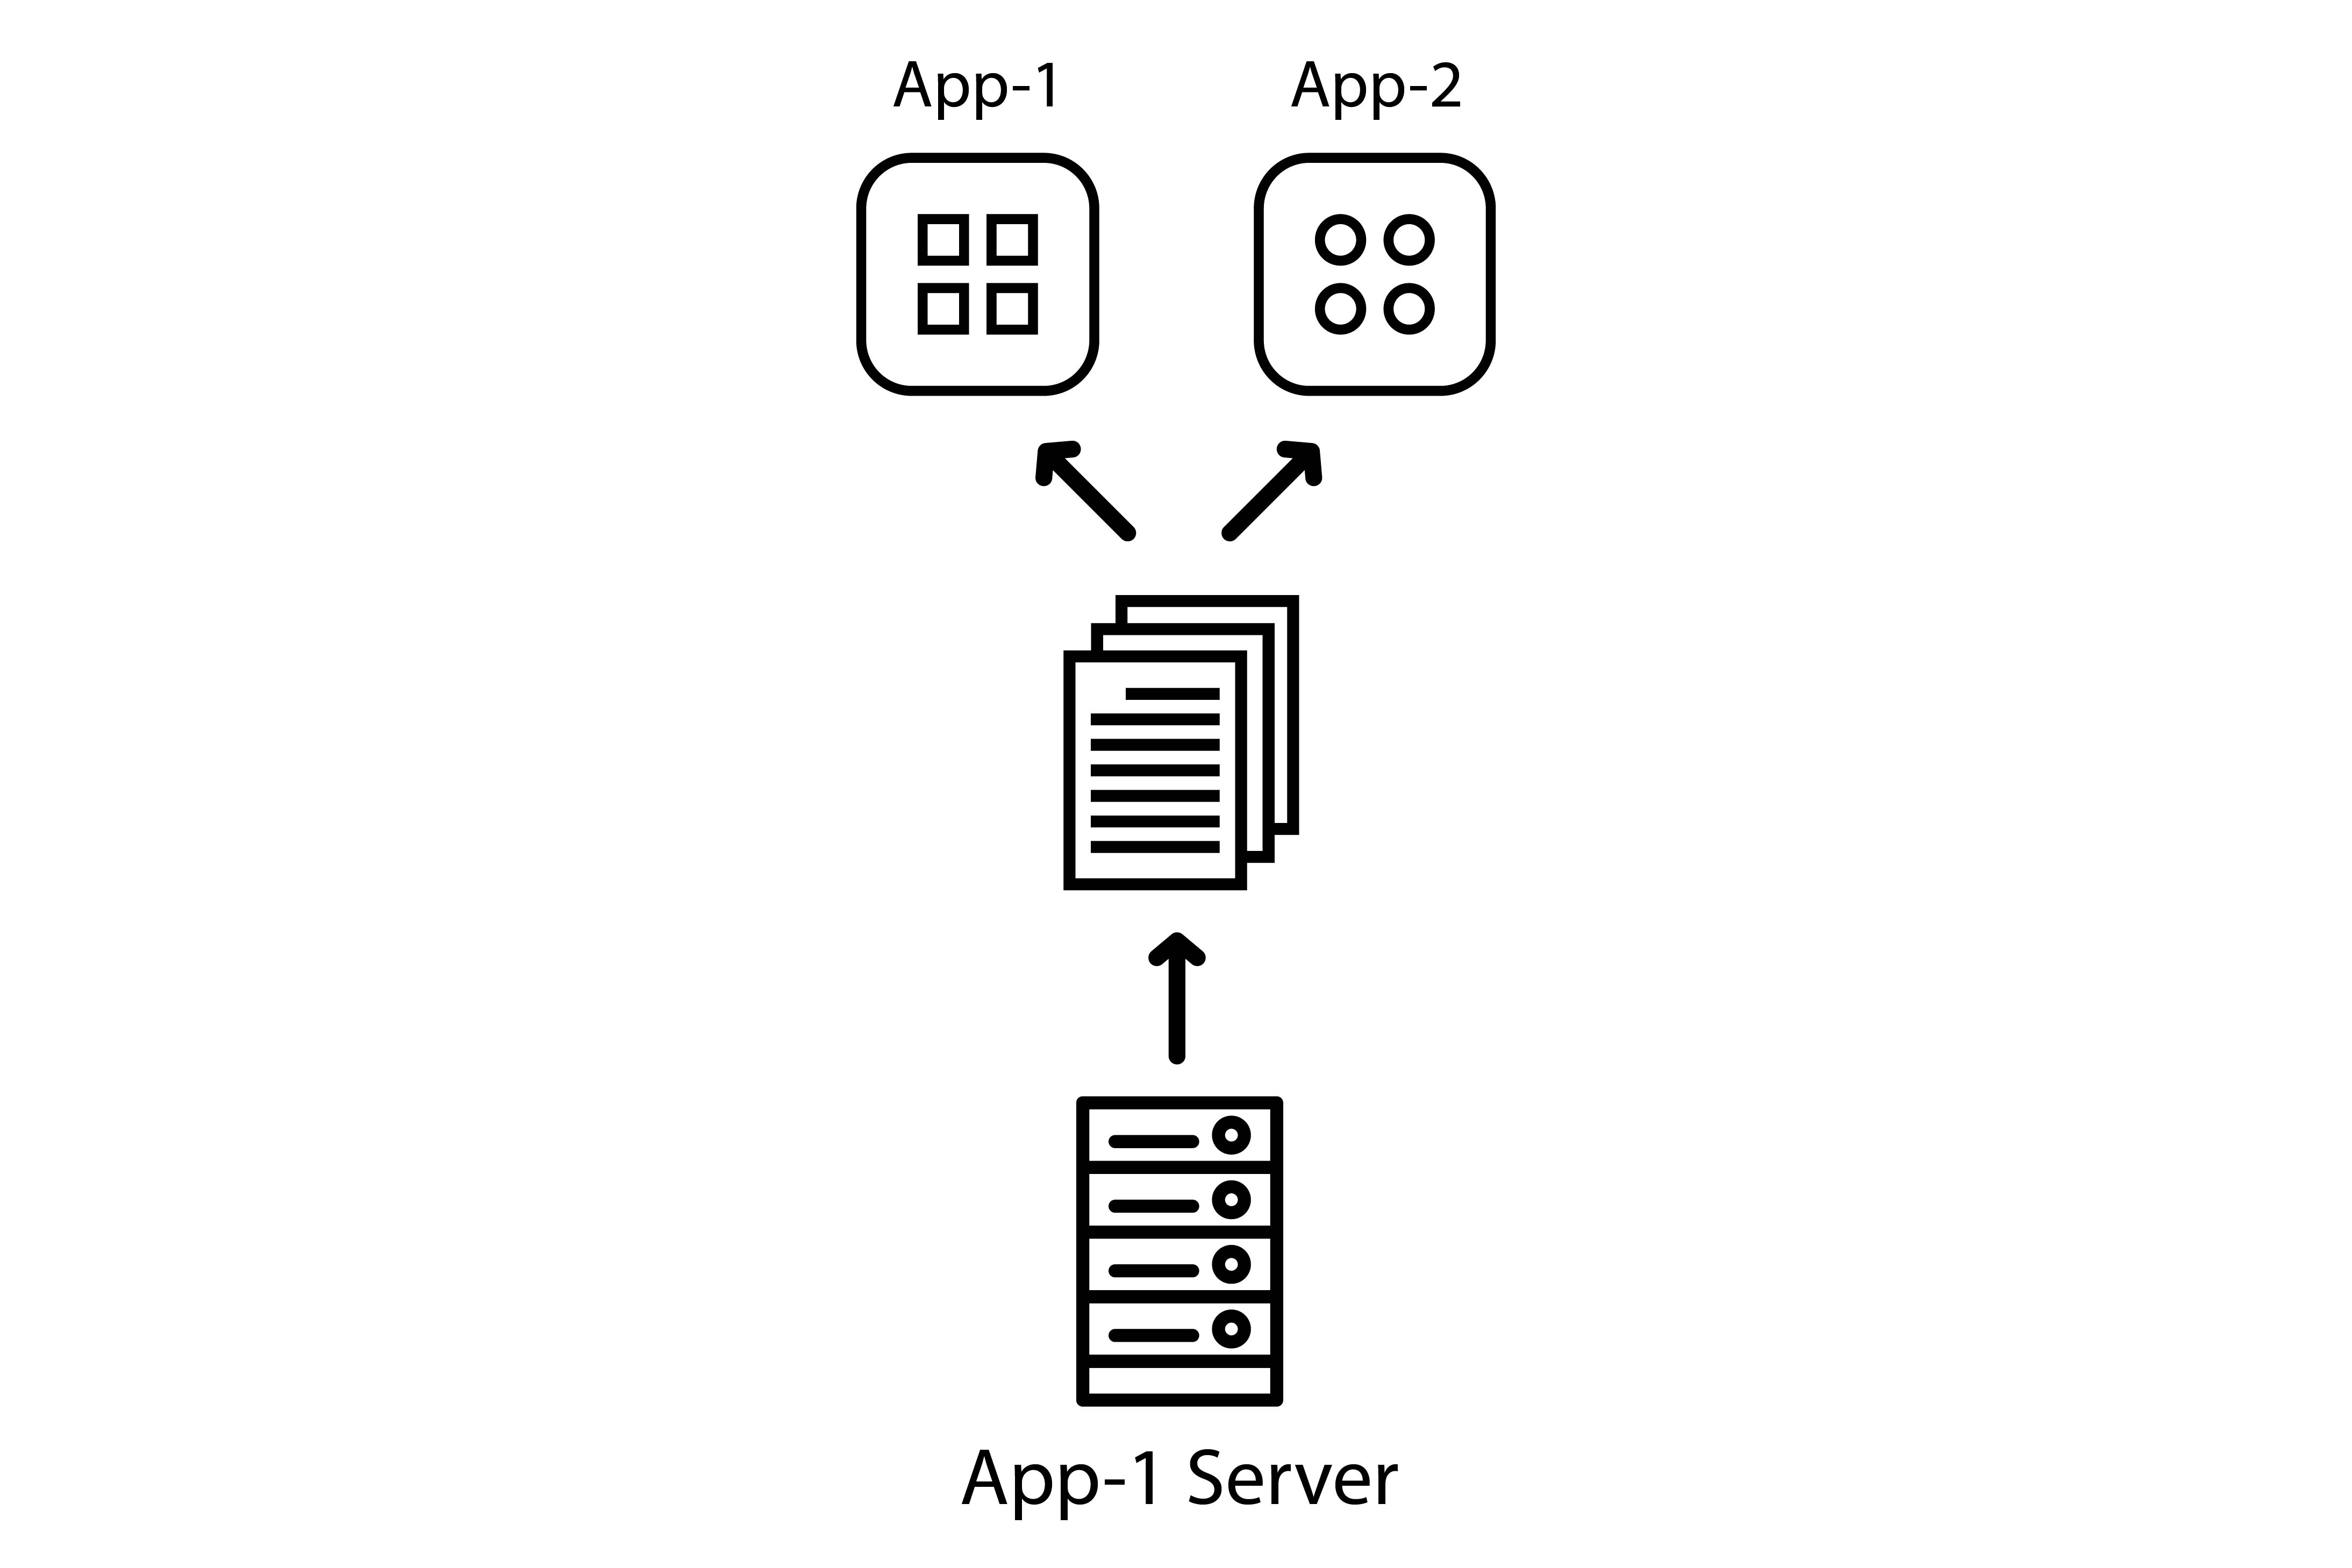 Two apps requesting from the same server